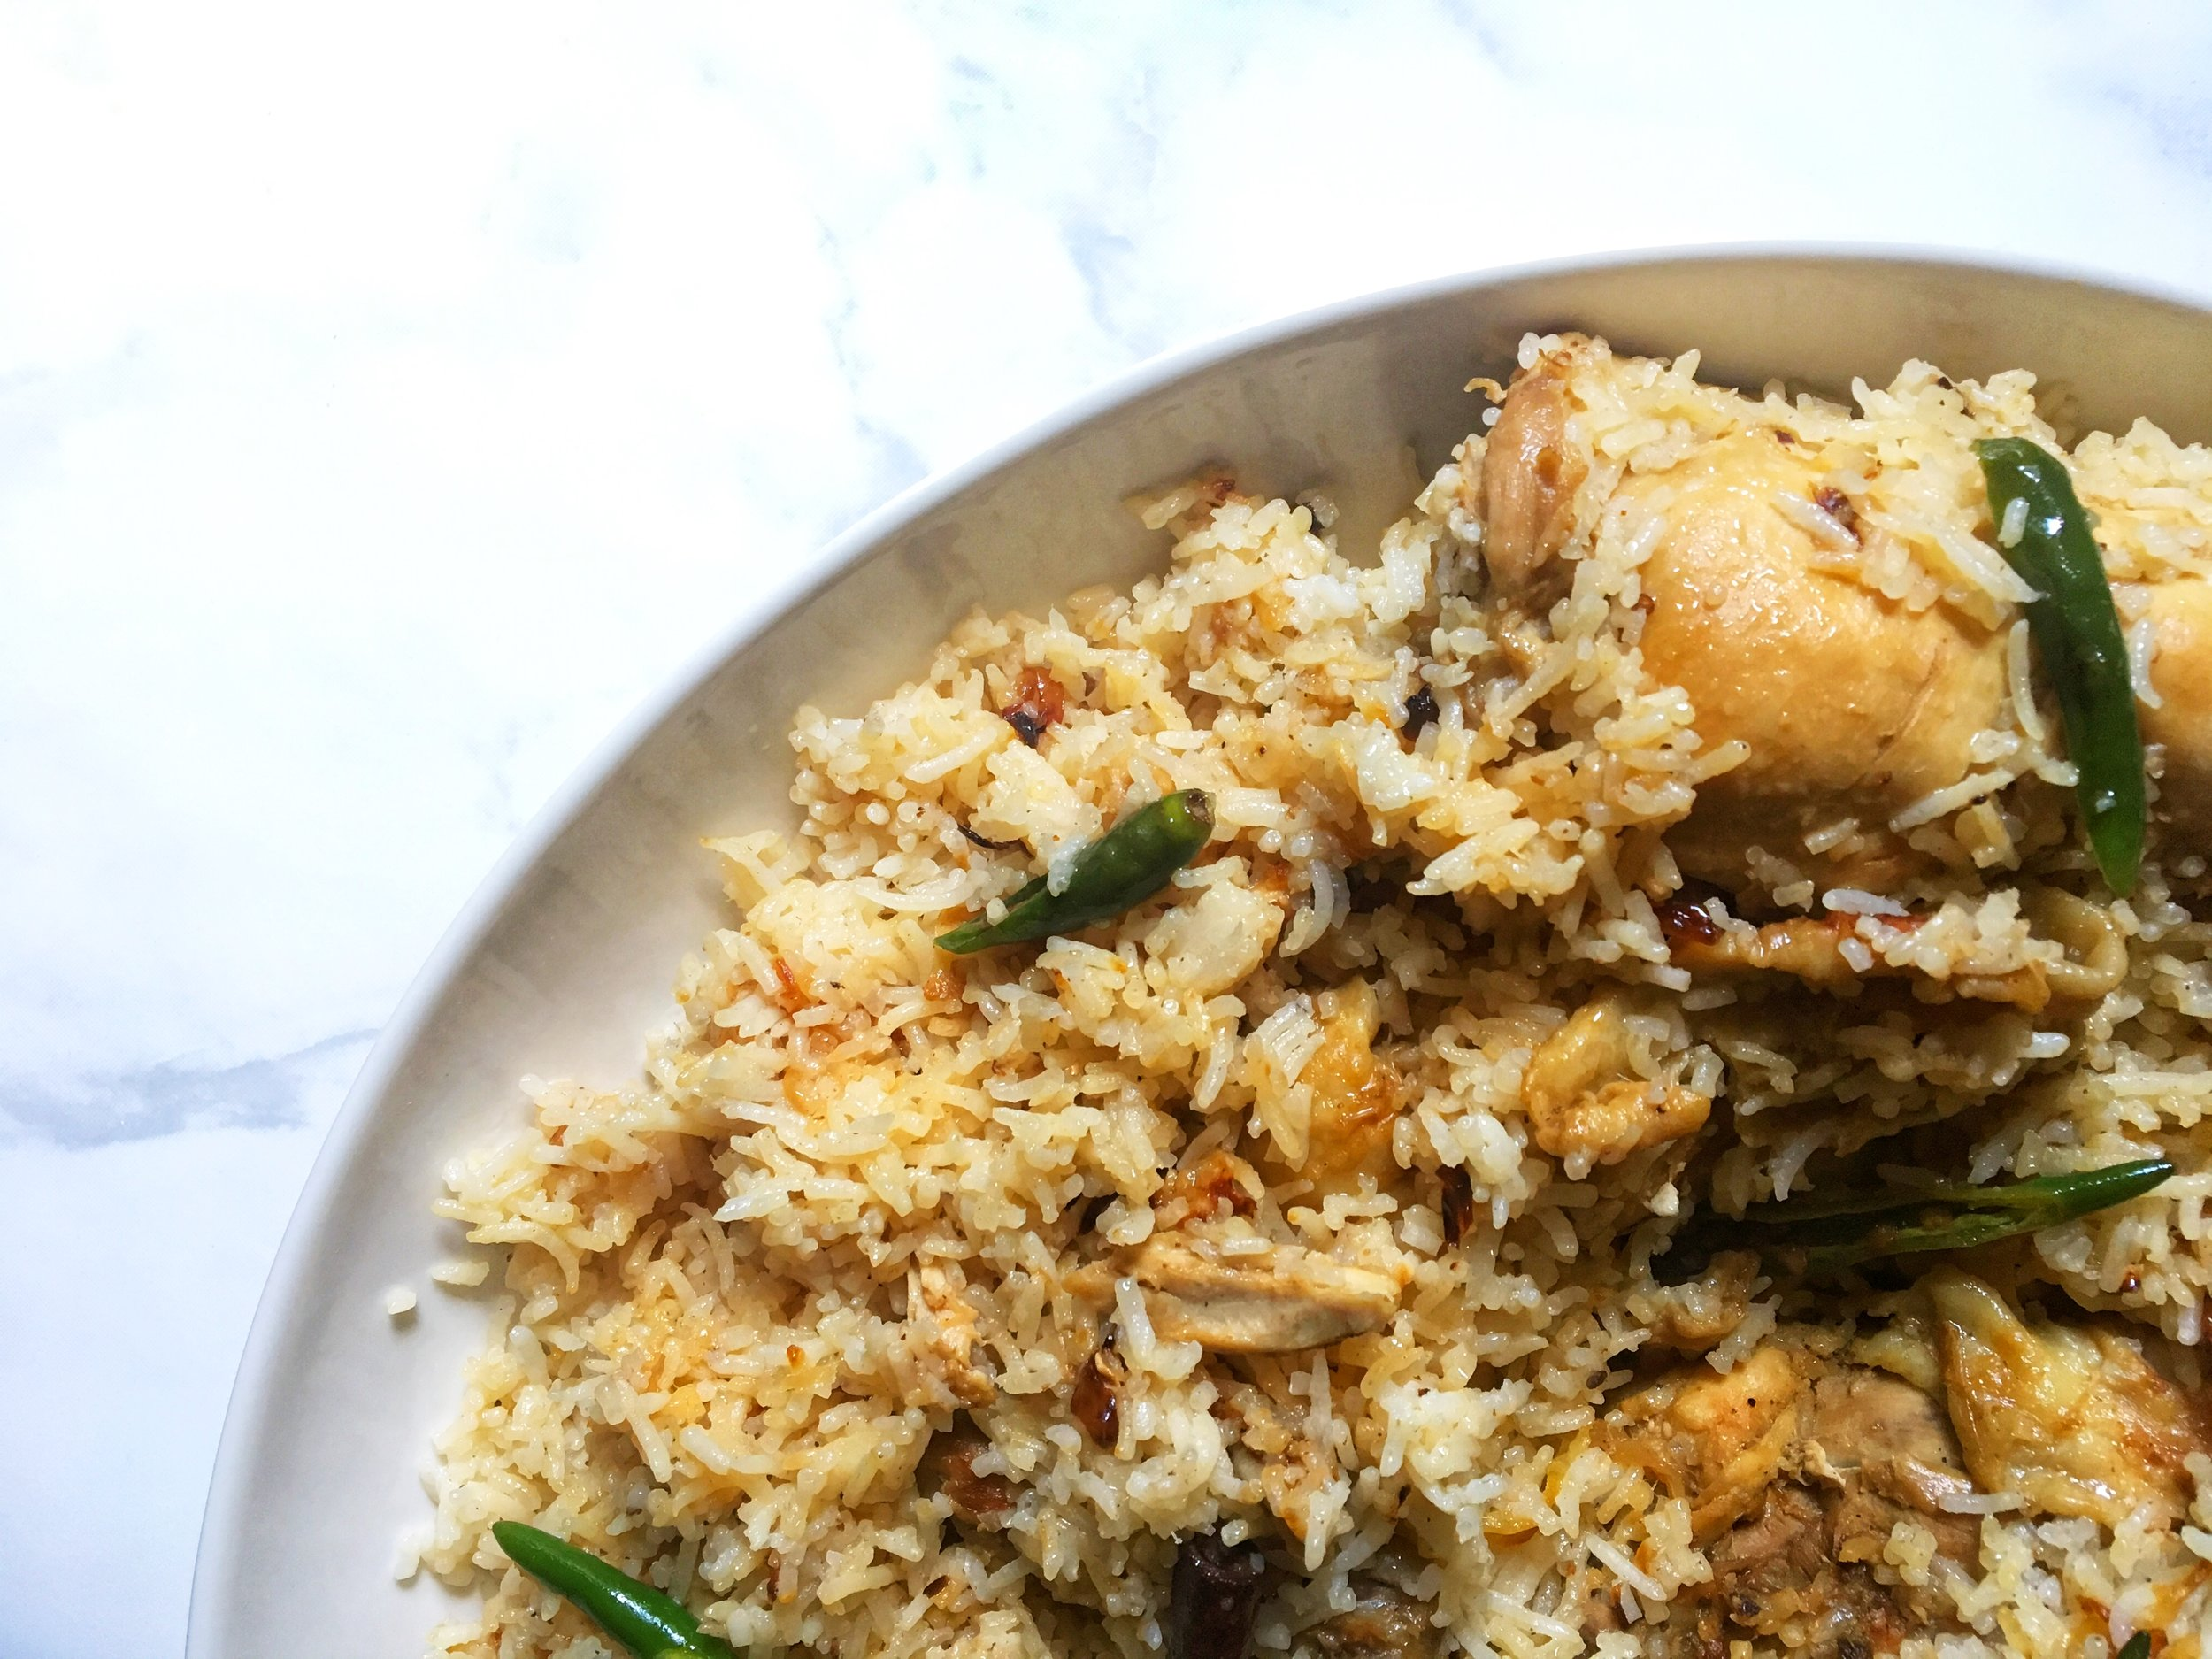 morog pulao: bengali chicken & basmati rice with ghee, caramelized onions, whole garam masala, and green chilies